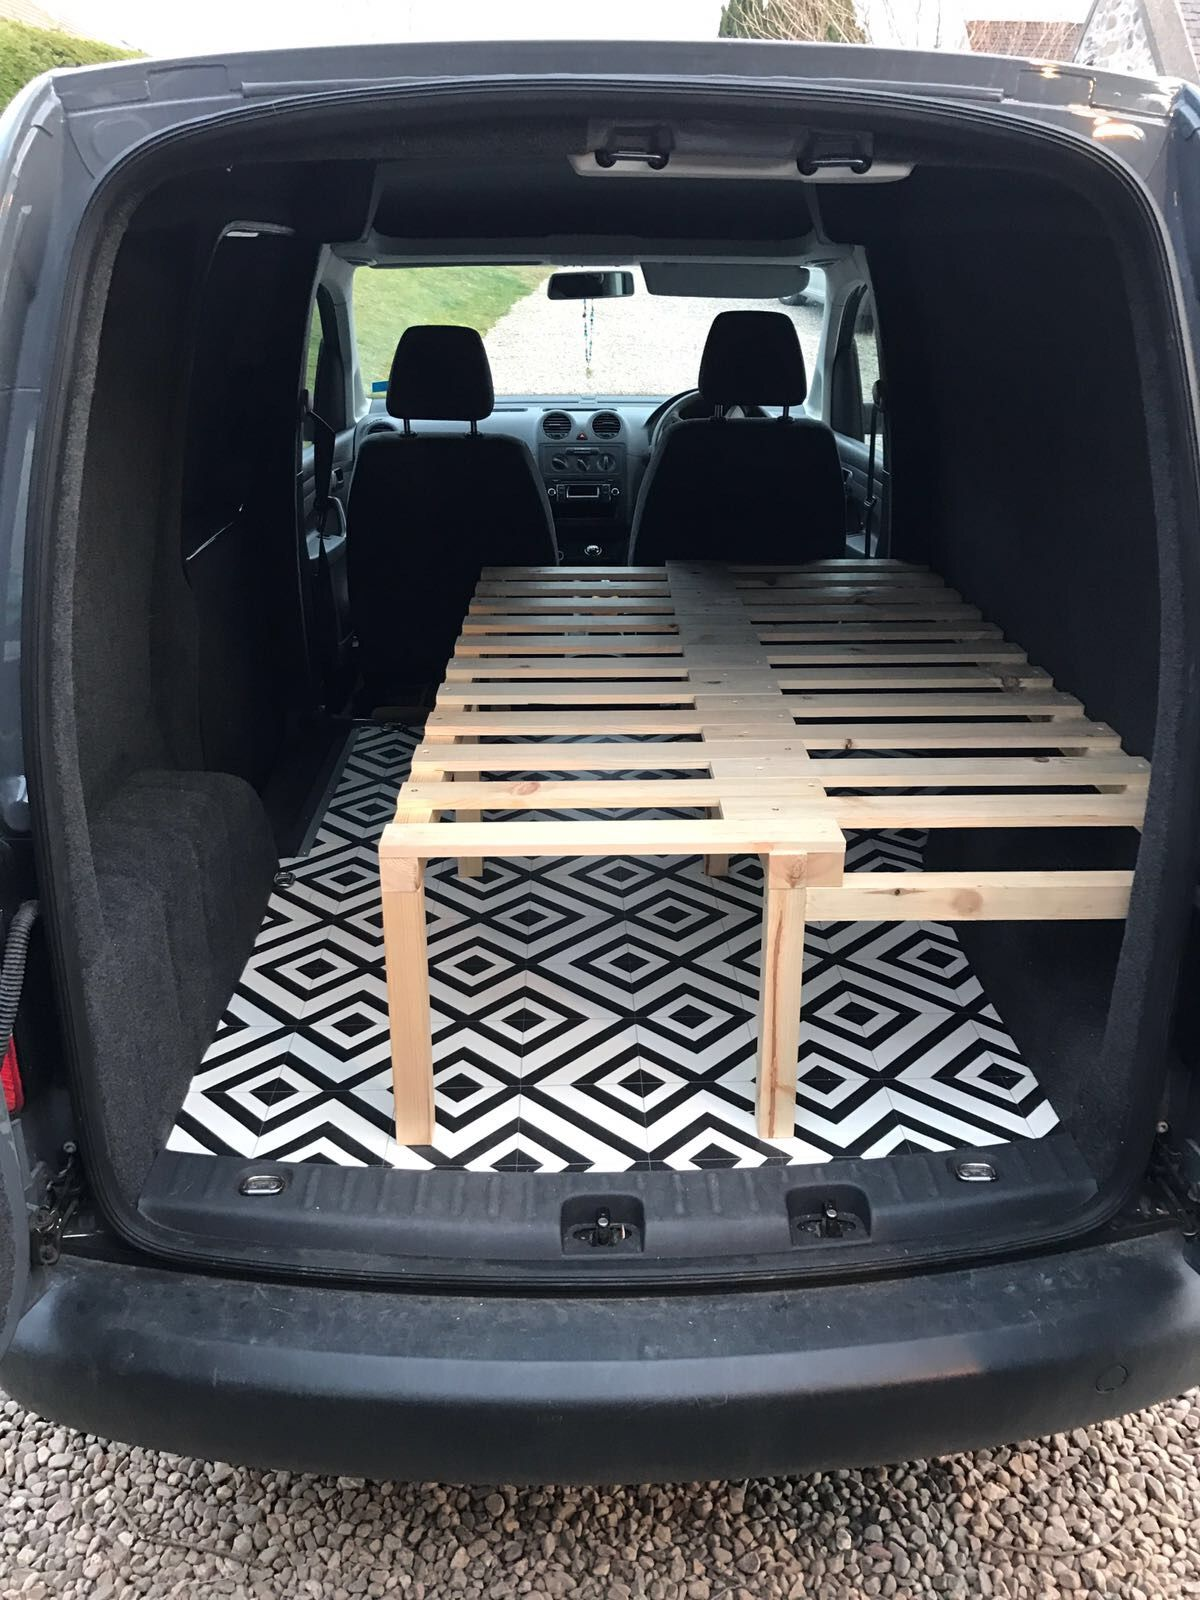 Marvelous Vw Caddy With Sliding Slat Bed Bench So Chuffed With It Andrewgaddart Wooden Chair Designs For Living Room Andrewgaddartcom